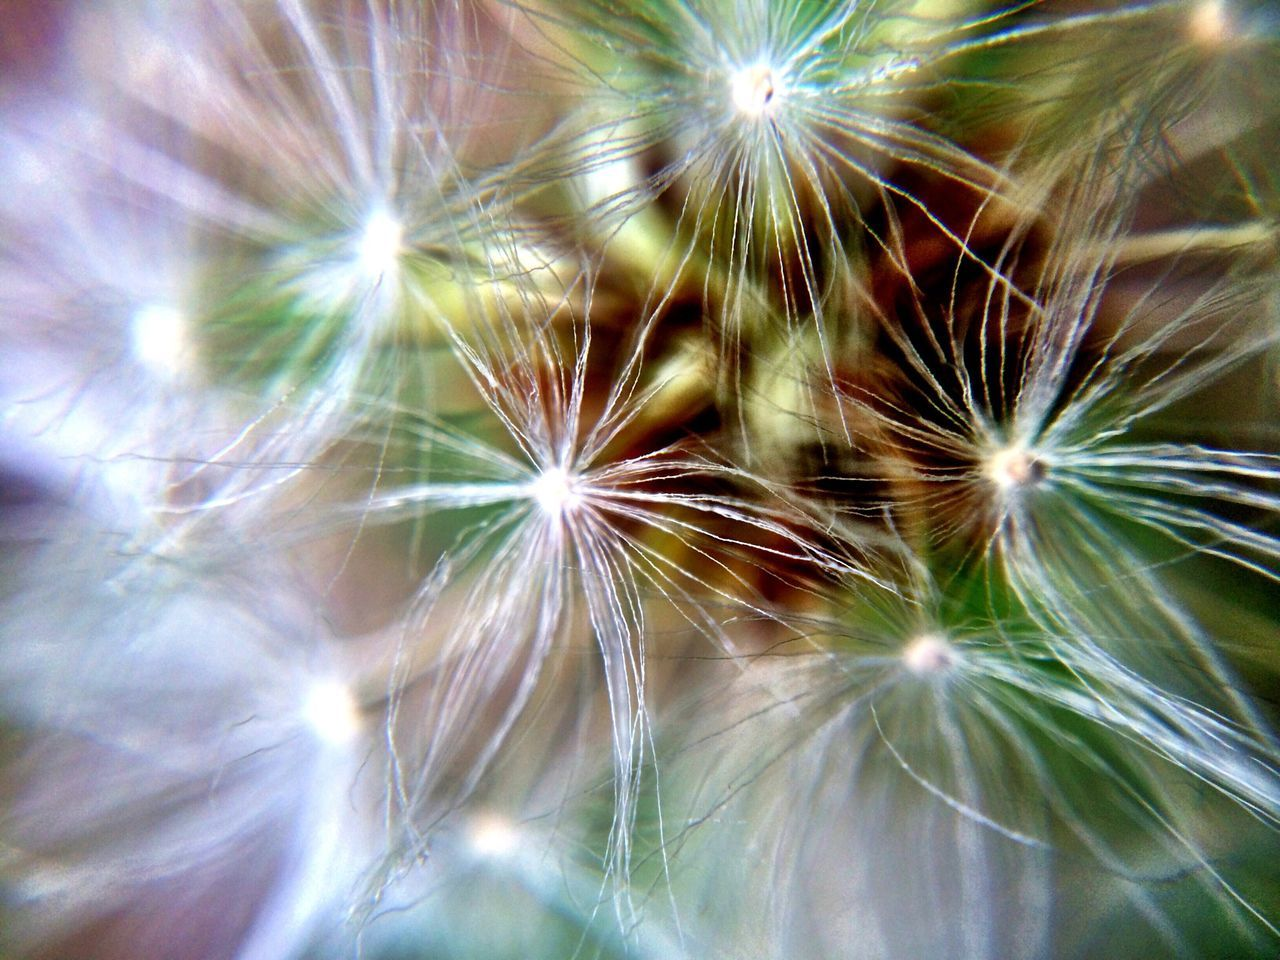 dandelion, dandelion seed, flower, softness, full frame, fragility, close-up, selective focus, no people, freshness, nature, growth, backgrounds, flower head, outdoors, day, beauty in nature